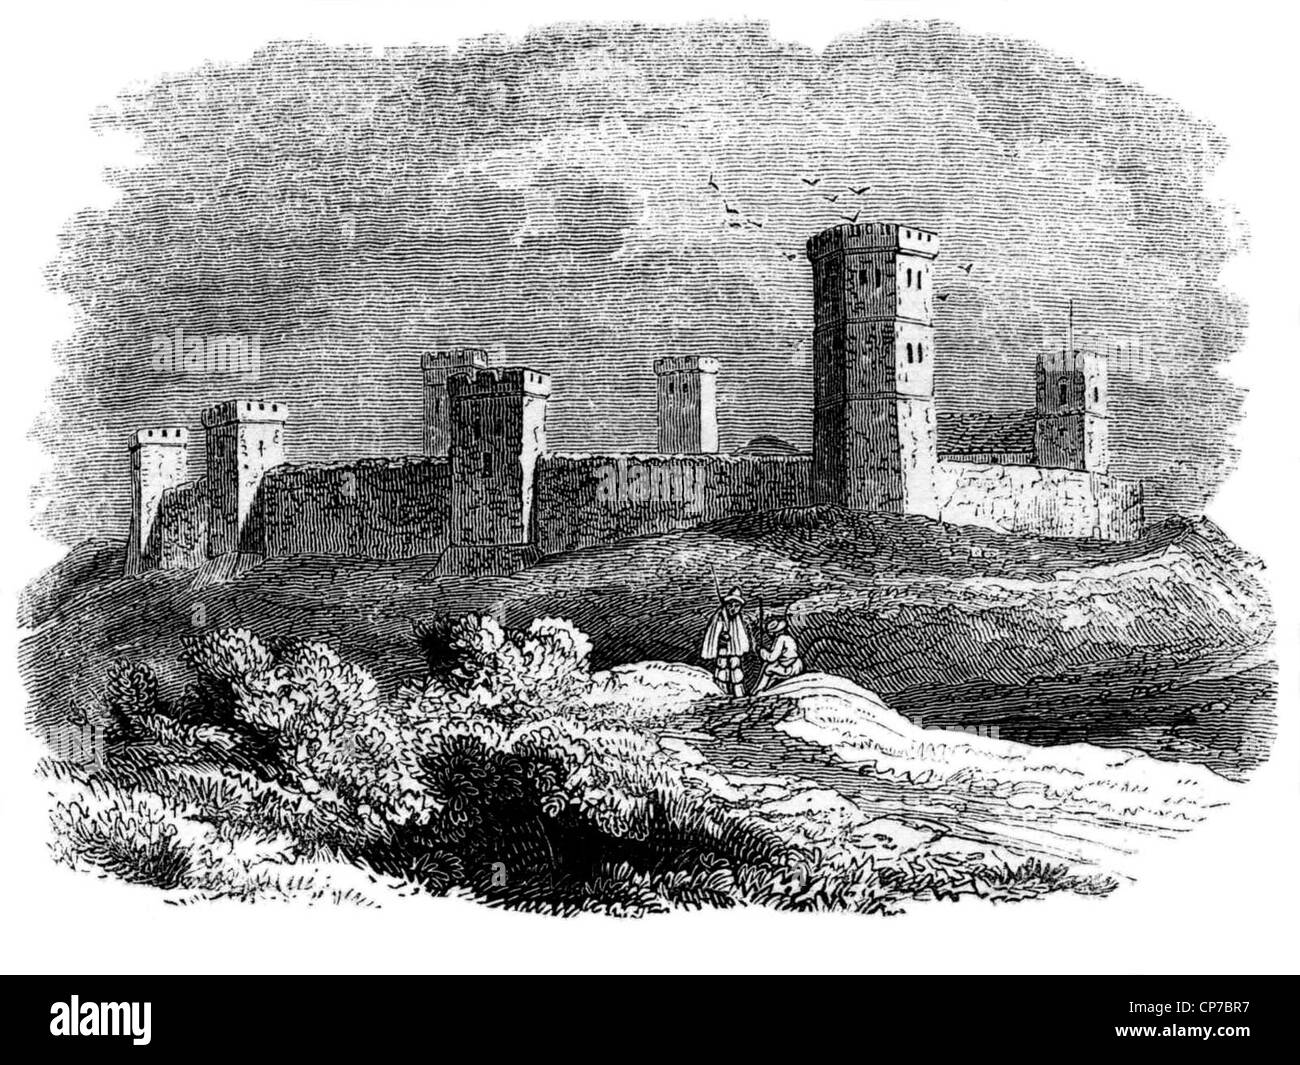 Engraving of Oxford castle pictured in 15th century, Oxfordshire, England. - Stock Image